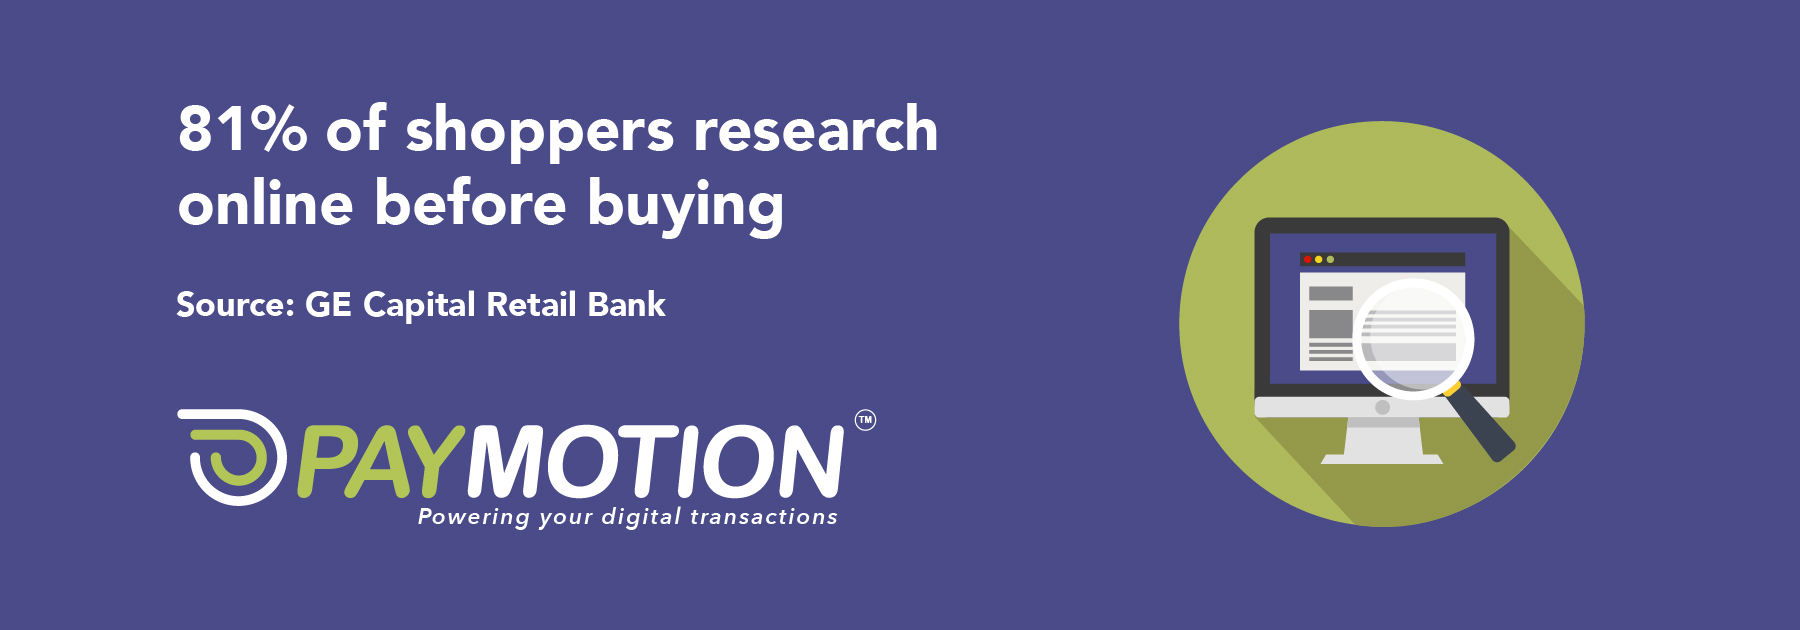 Origins Ecommerce, 81% of shoppers research online before buying image